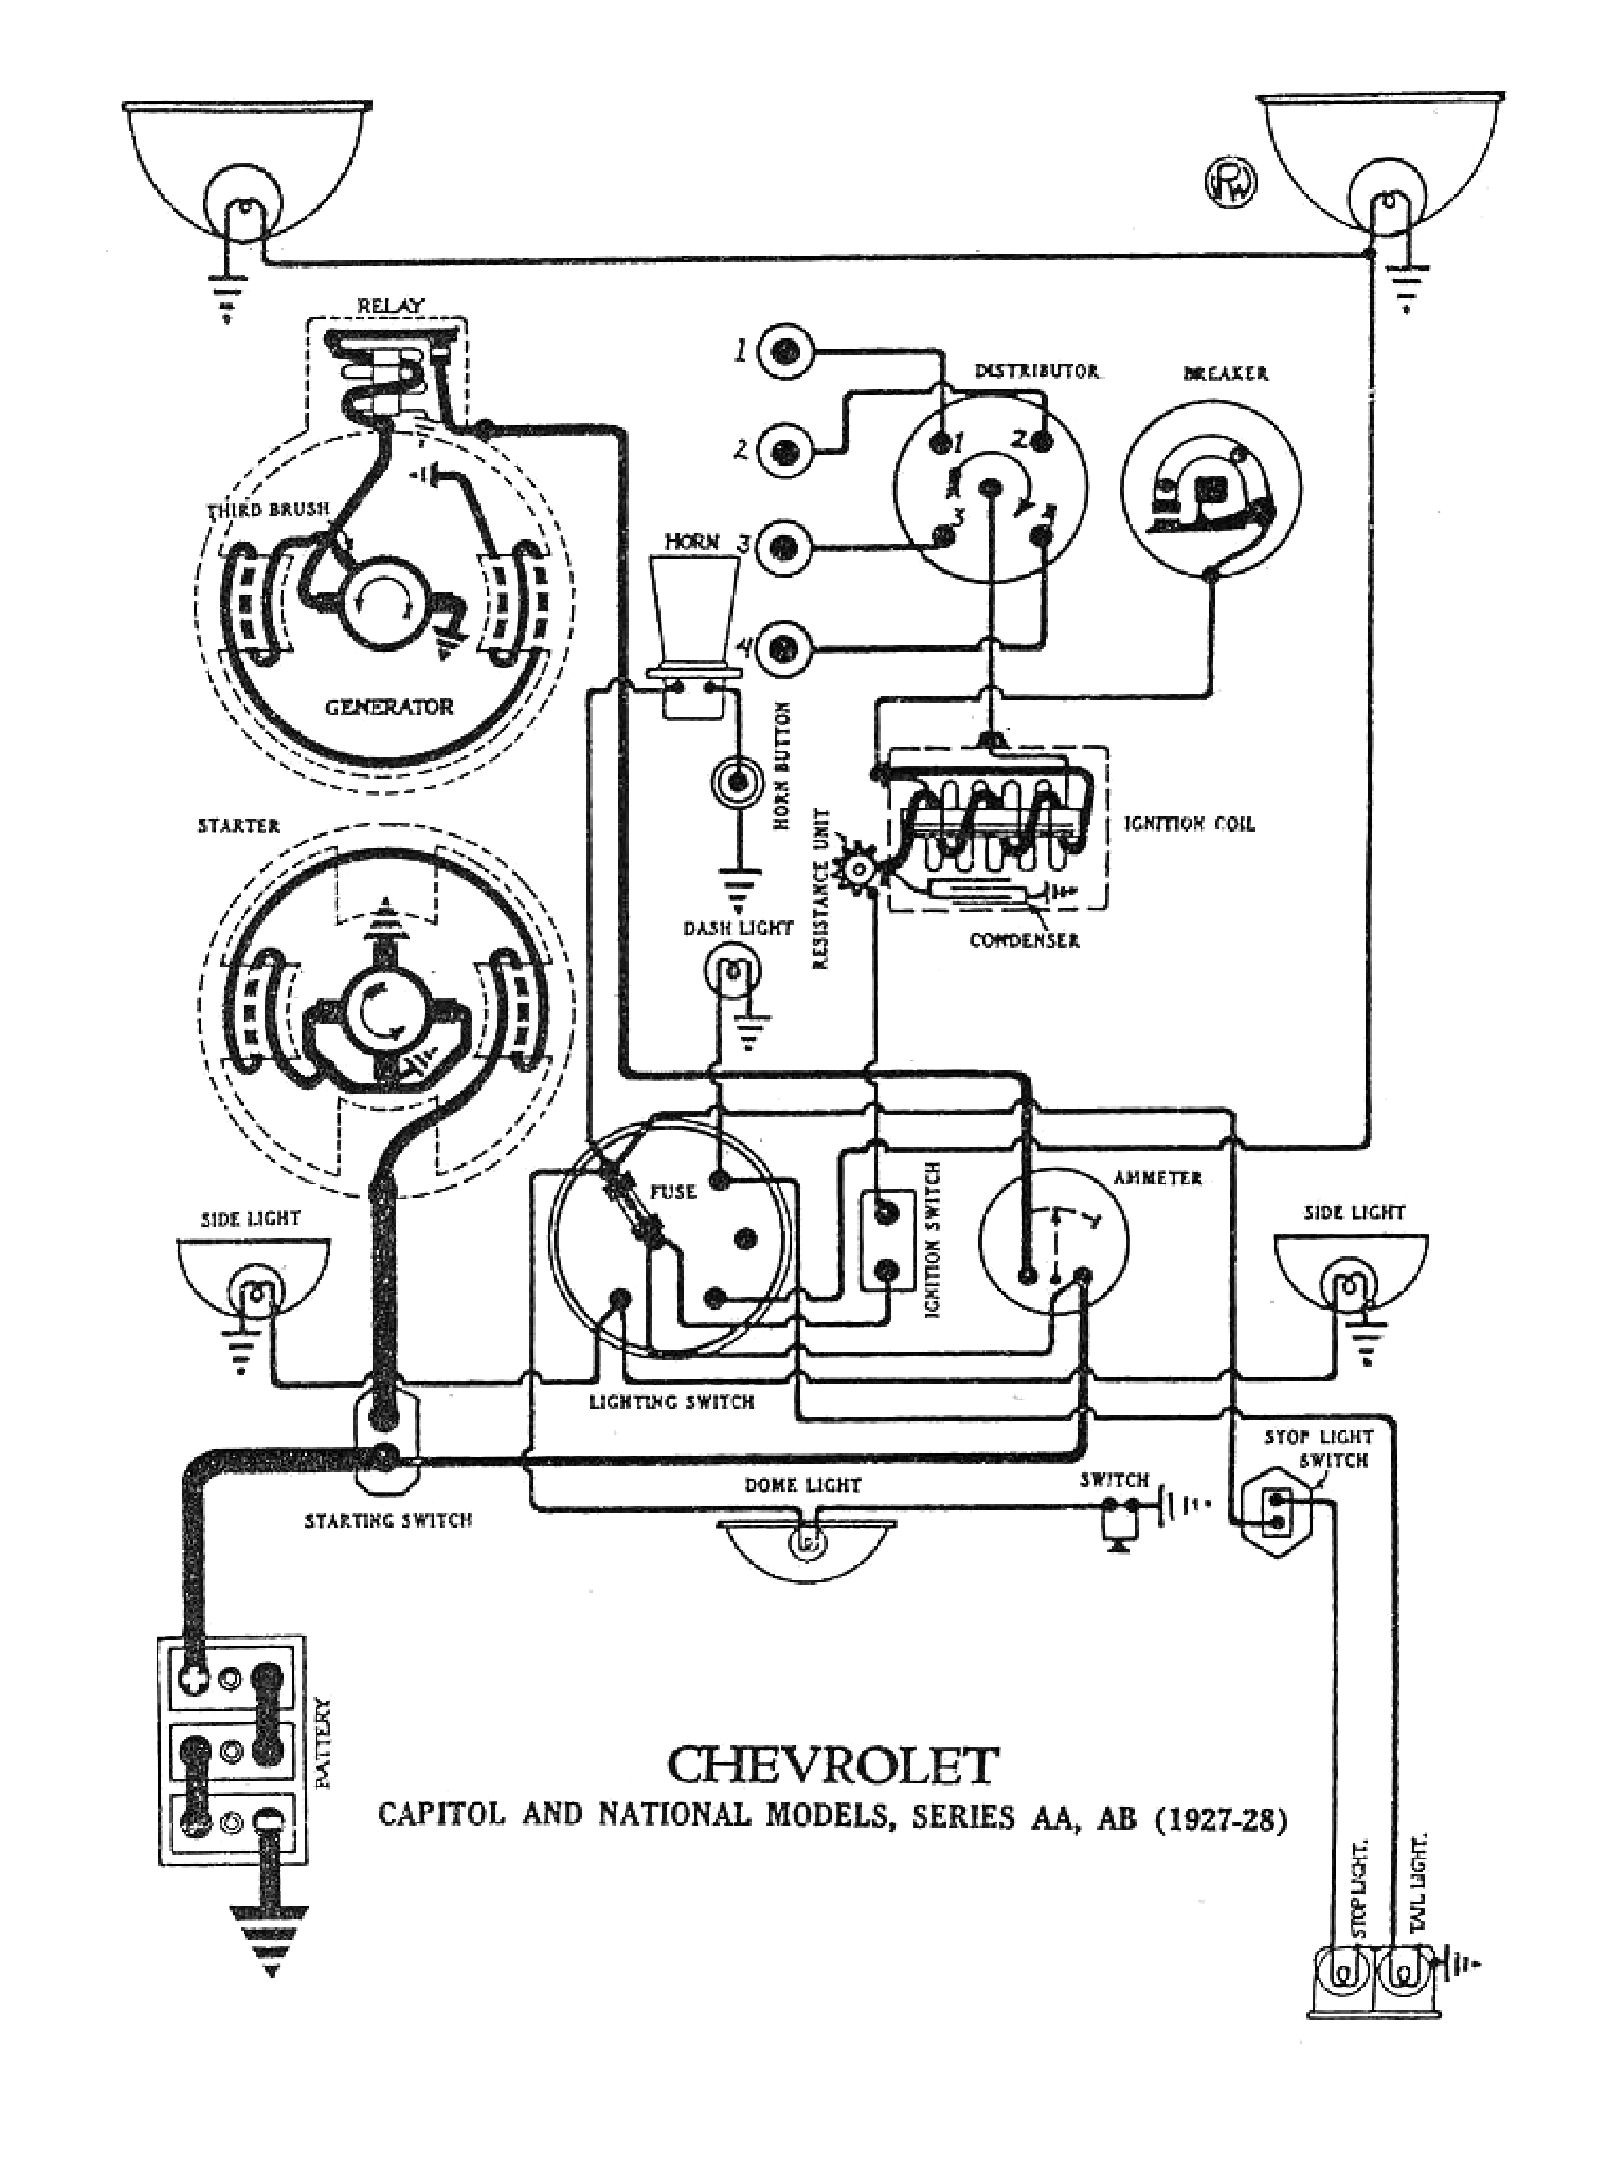 350 Chevy Engine Diagram 78 Chevy Starter Diagram Wiring